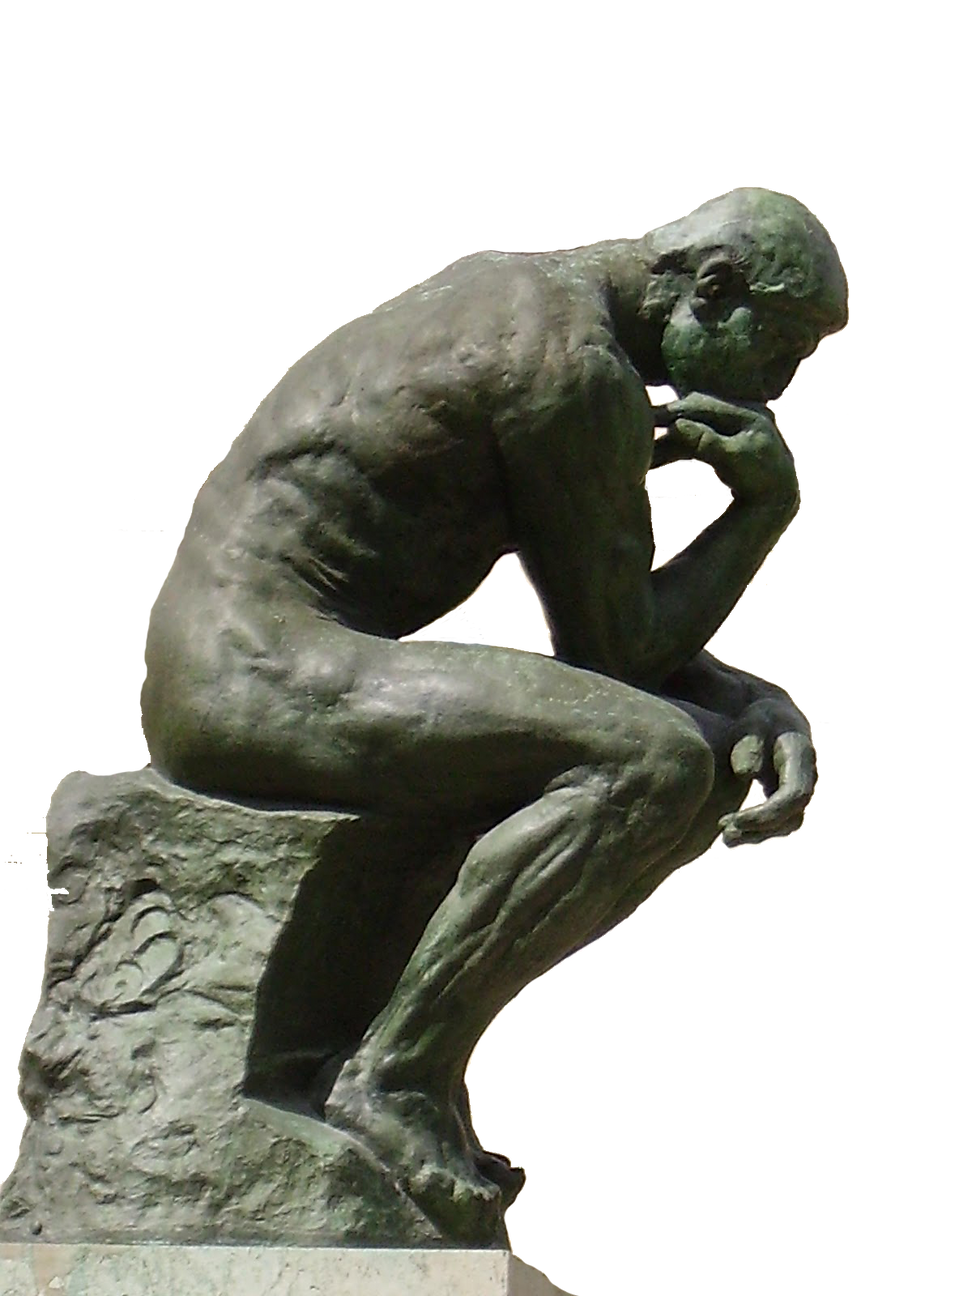 kisspng-the-thinker-sculpture-art-monume